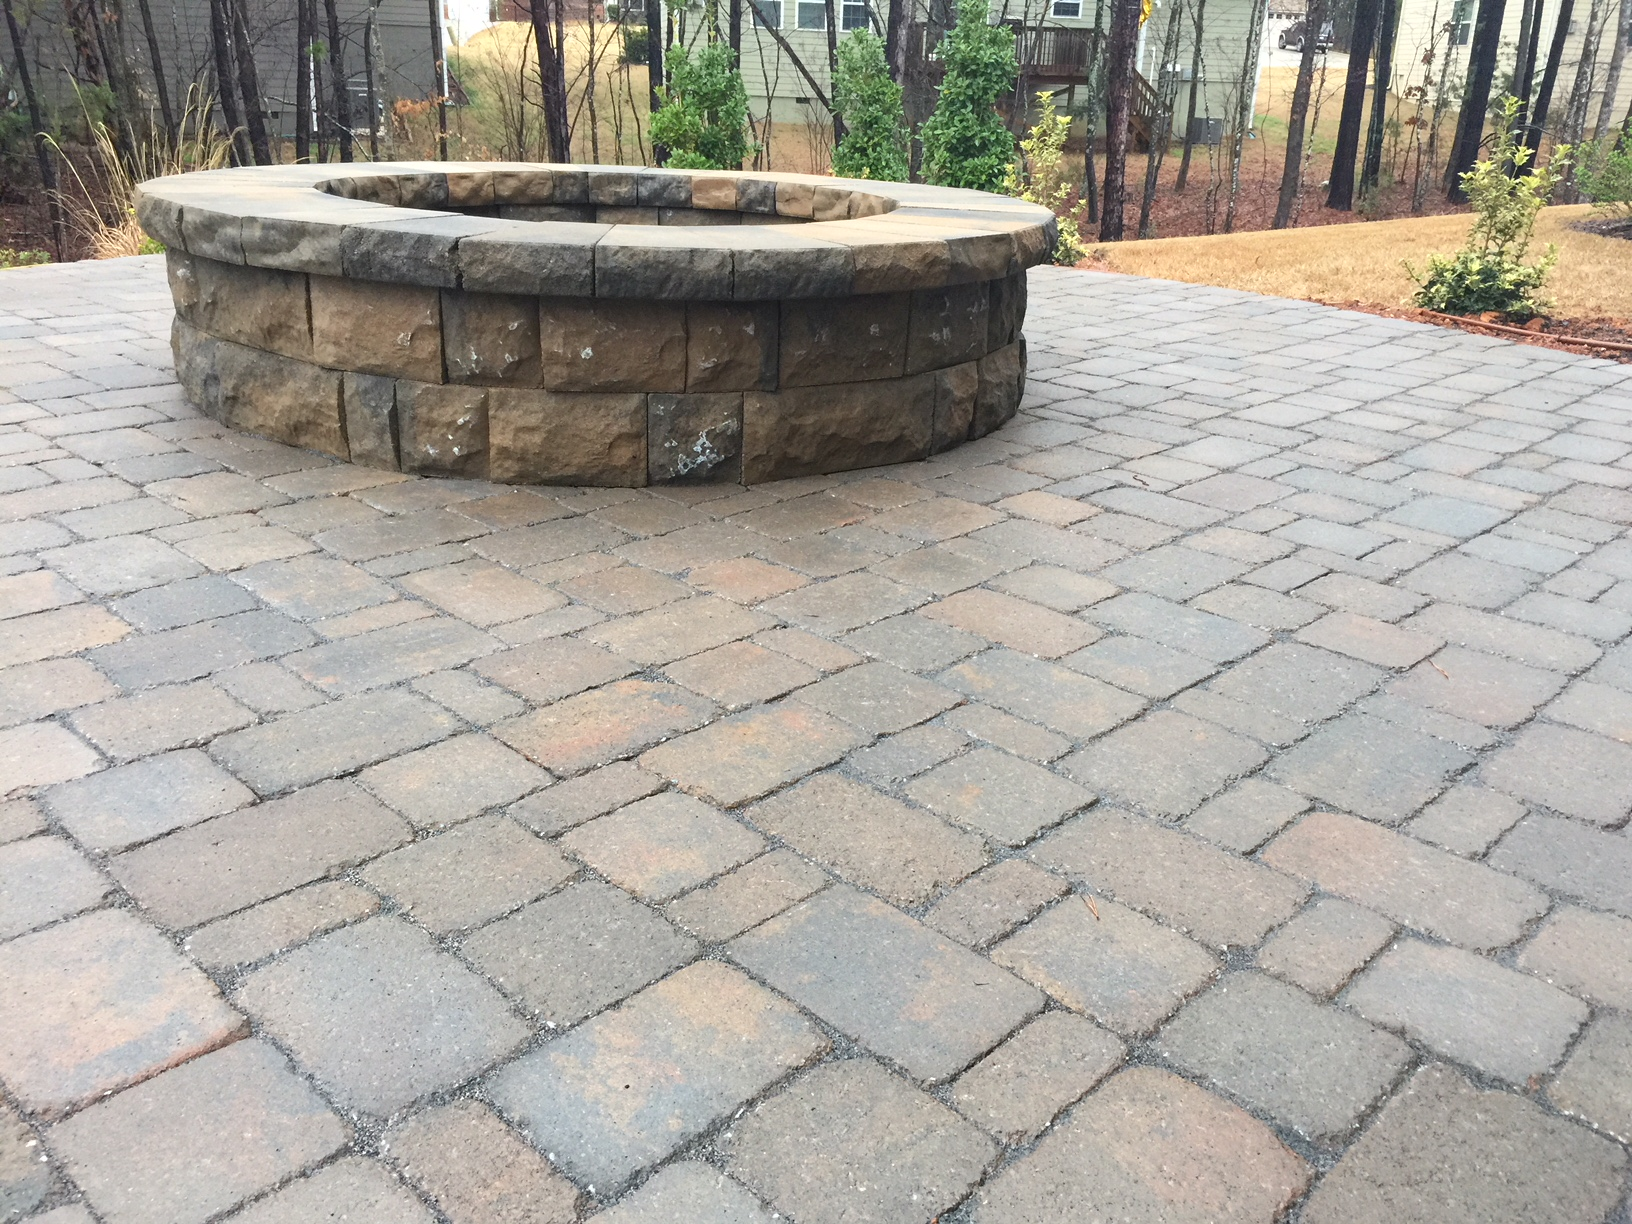 A Belgard Paver Patio, Fire Pit and Landscaping - Mr ... on Pavers Patio With Fire Pit id=29804